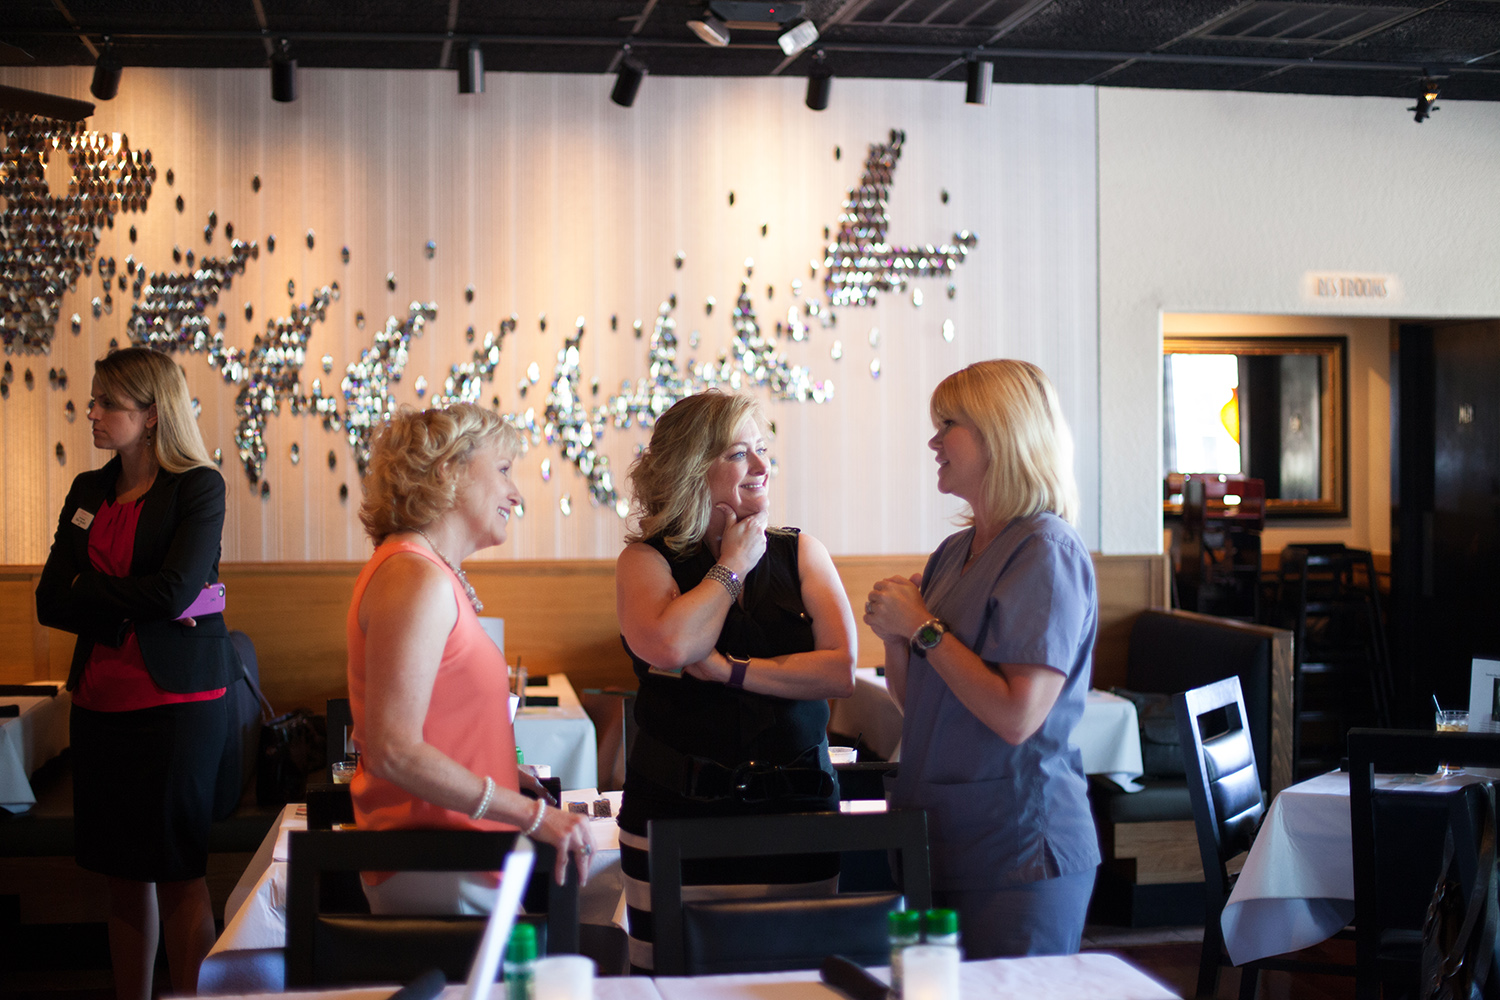 Showing Up: The Key to Networking